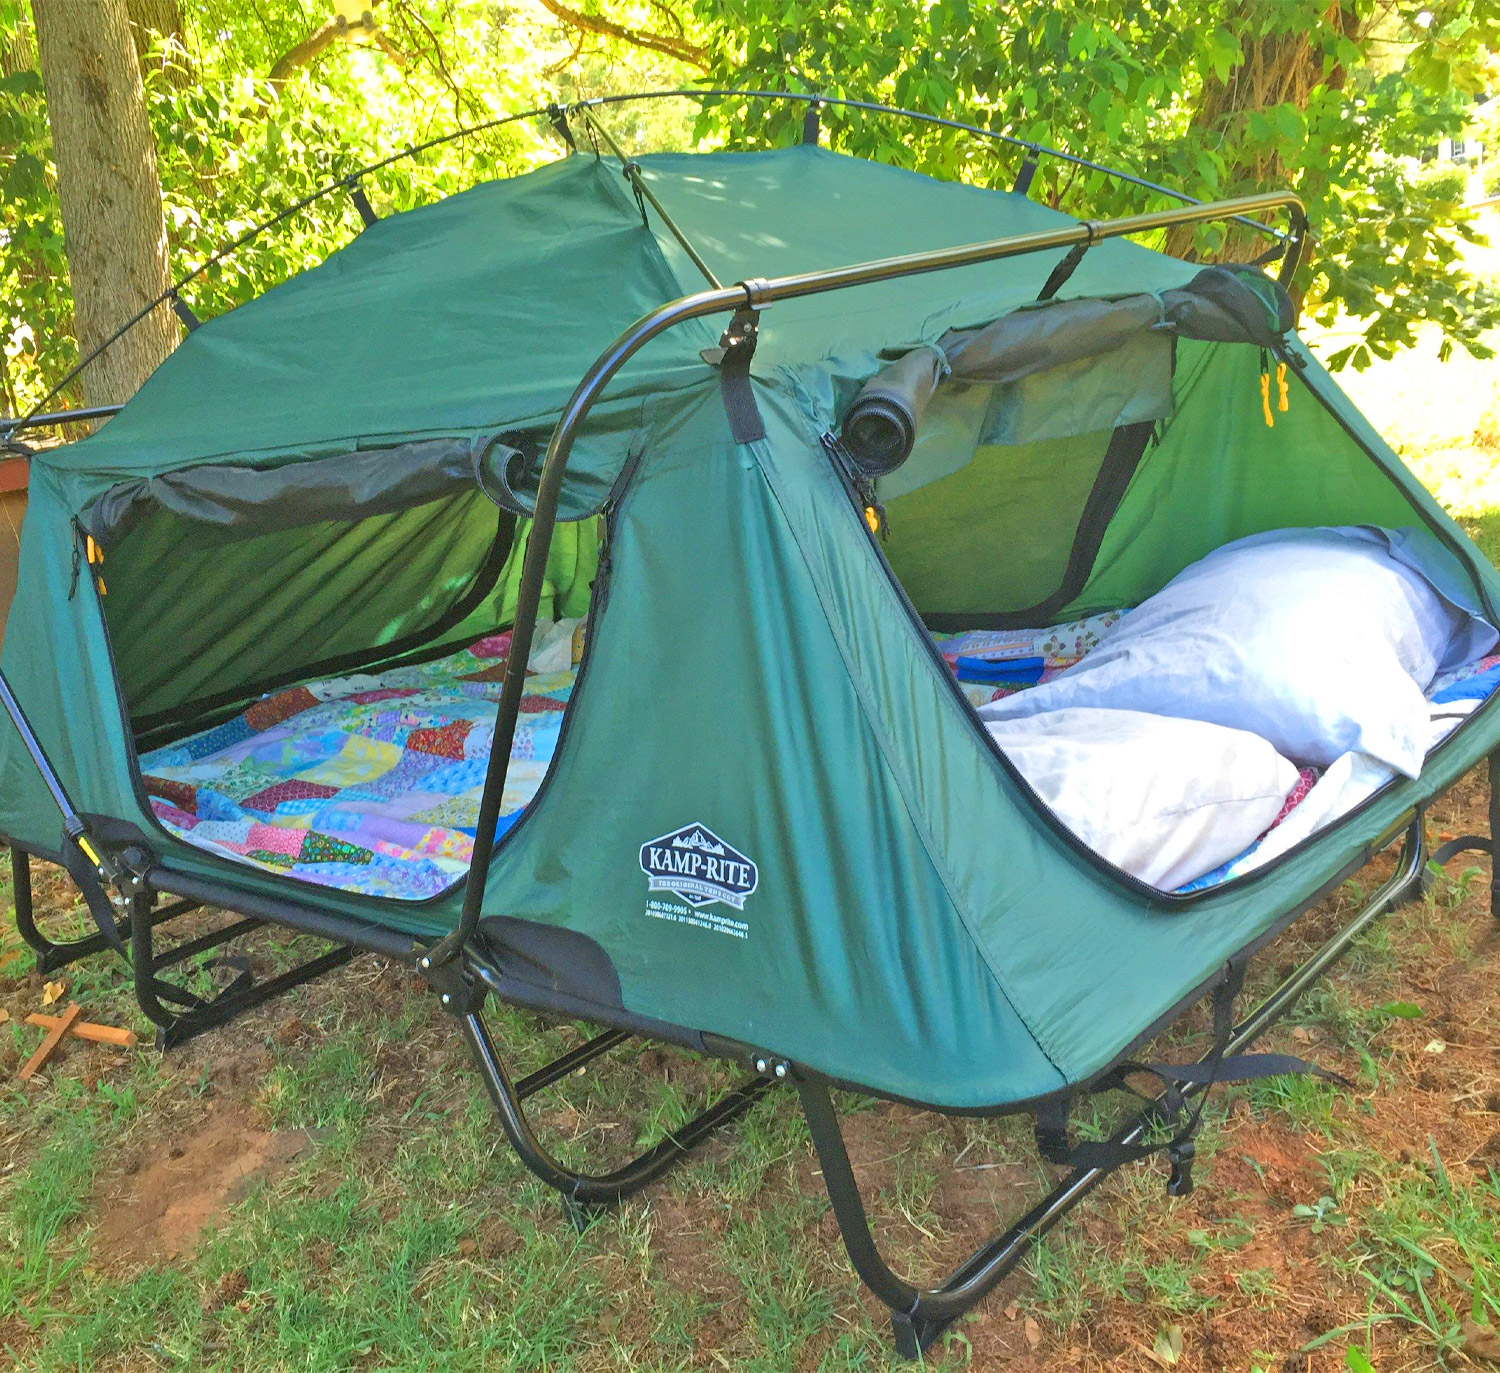 Amazing Double Tent Cot Prevents You From Having To Sleep On The Cold Hard Ground